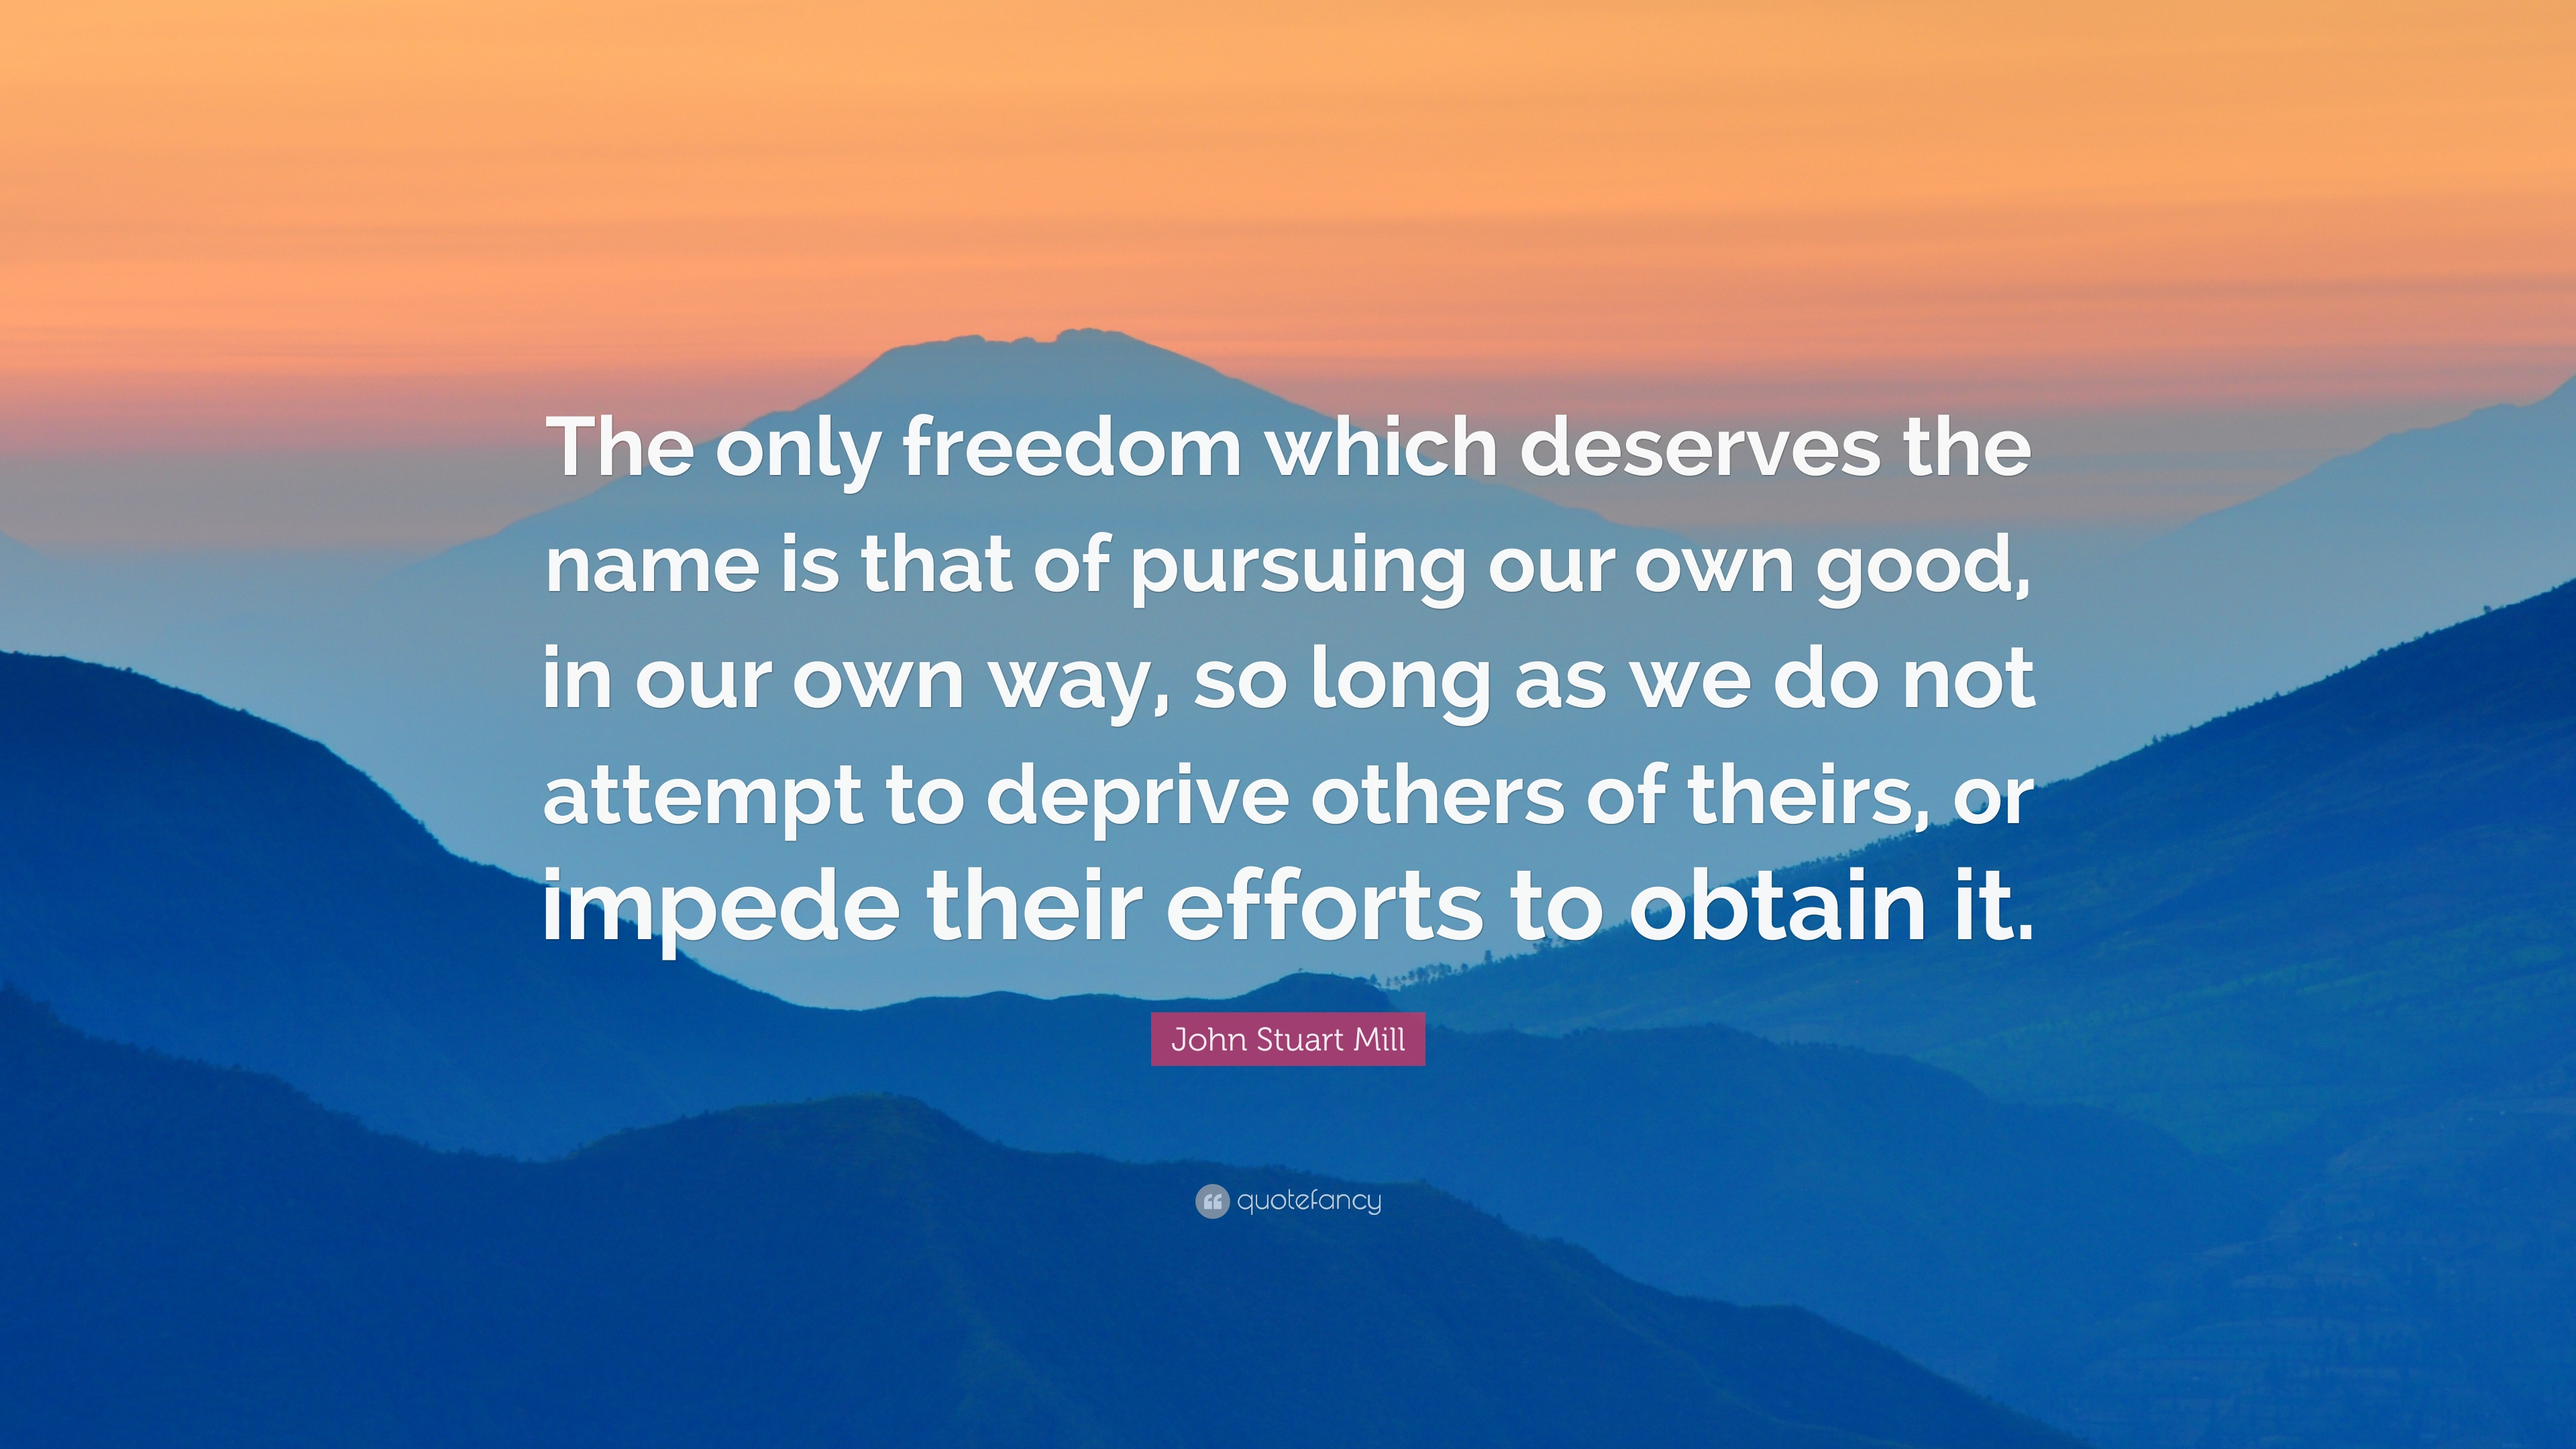 """""""The only freedom which deserves the name is that of pursuing our own good, in our own way, so long as we do not attempt to deprive others of theirs, or impede their efforts to obtain it."""" – John Stuart Mill [3840 x 2160]"""